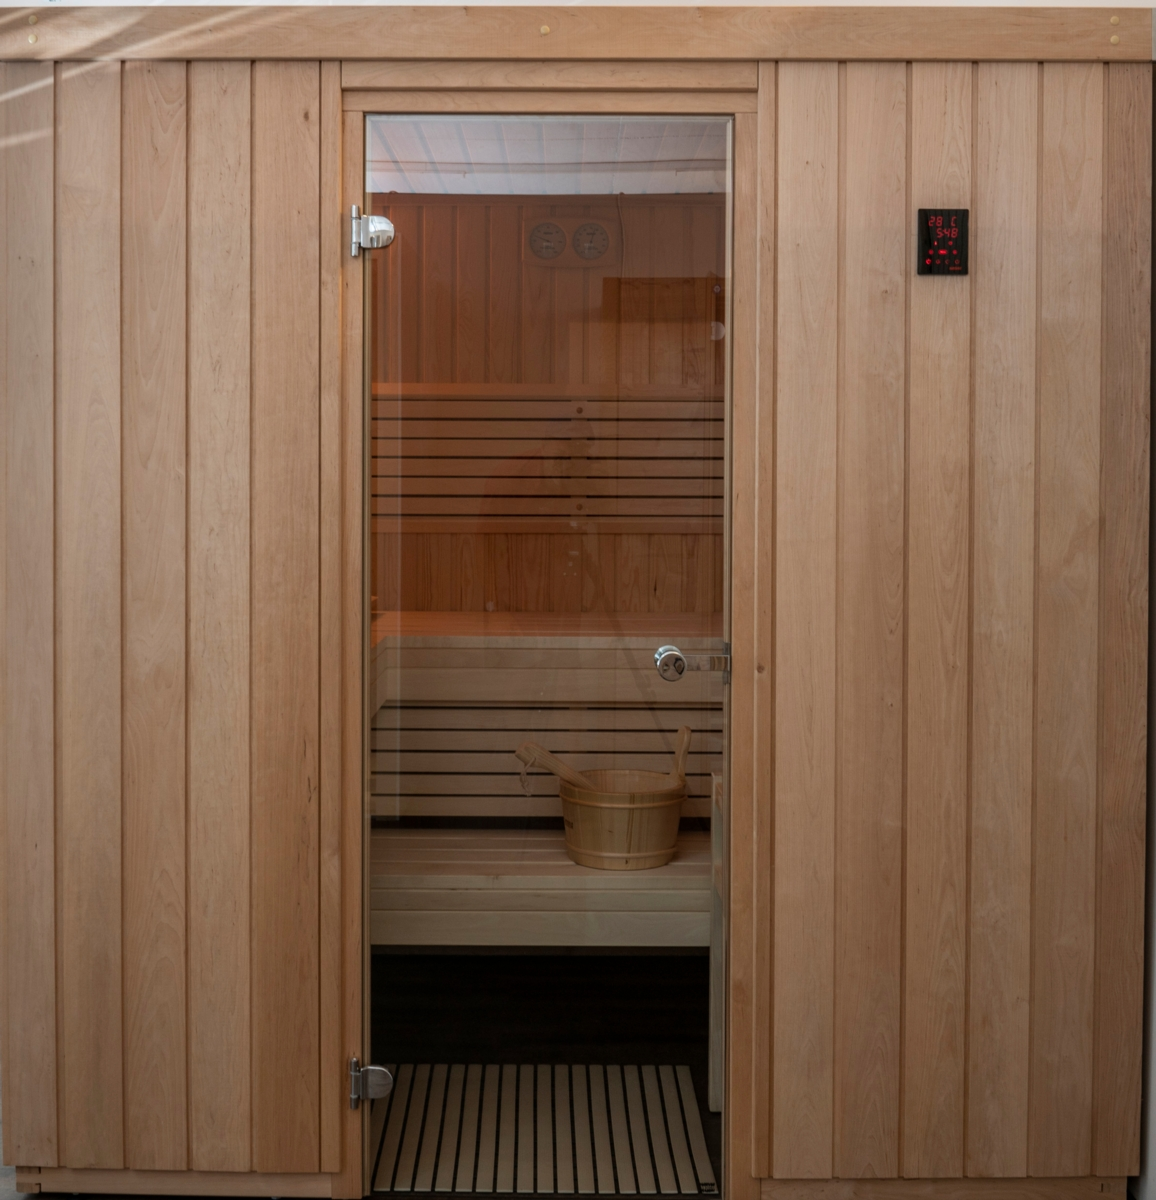 Sauna in Erle & Kiefer